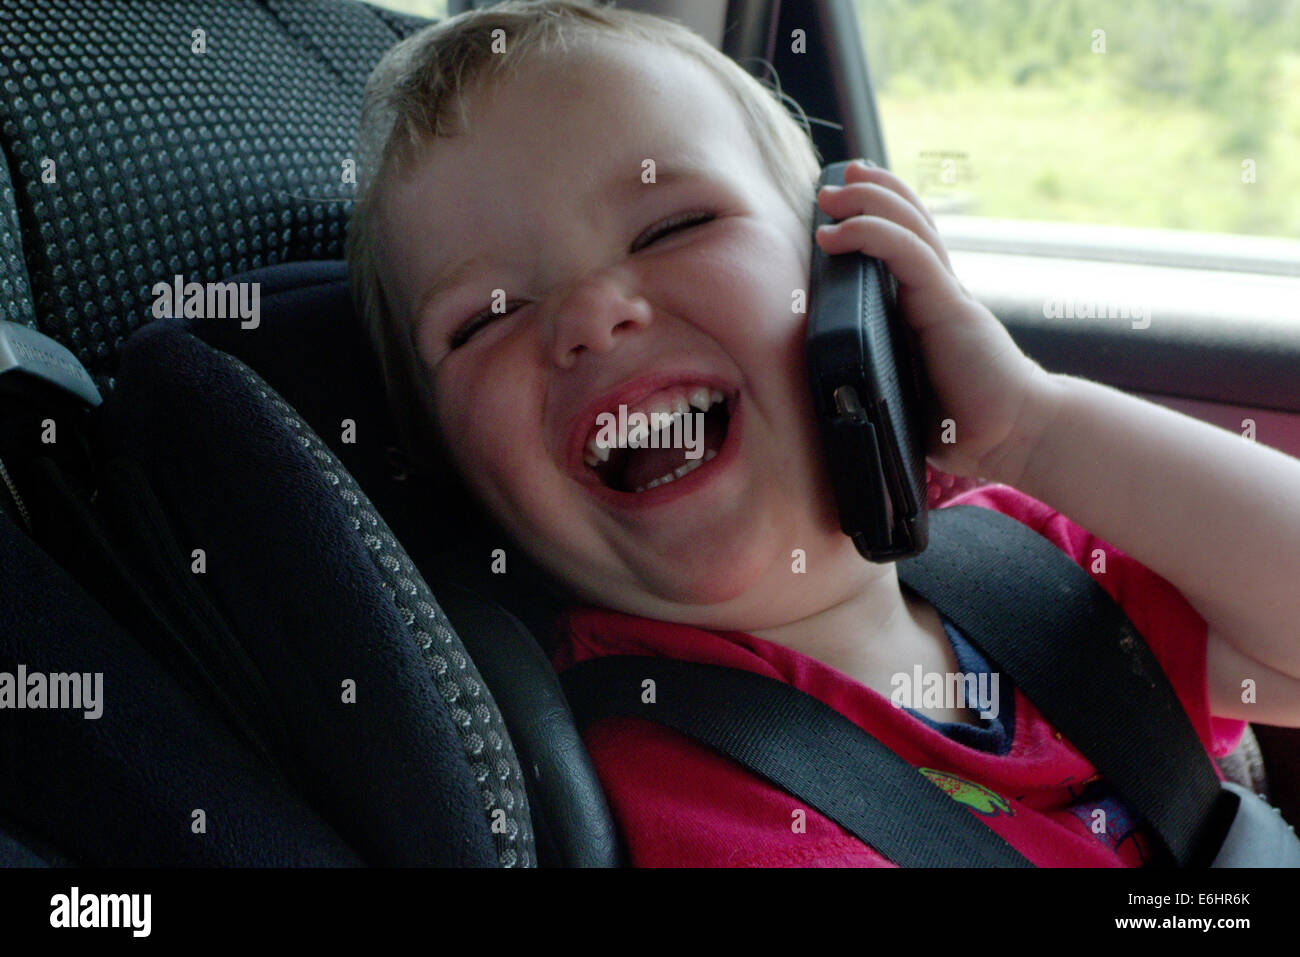 a-baby-in-a-car-seat-laughing-pretending-to-use-an-iphone-E6HR6K.jpg